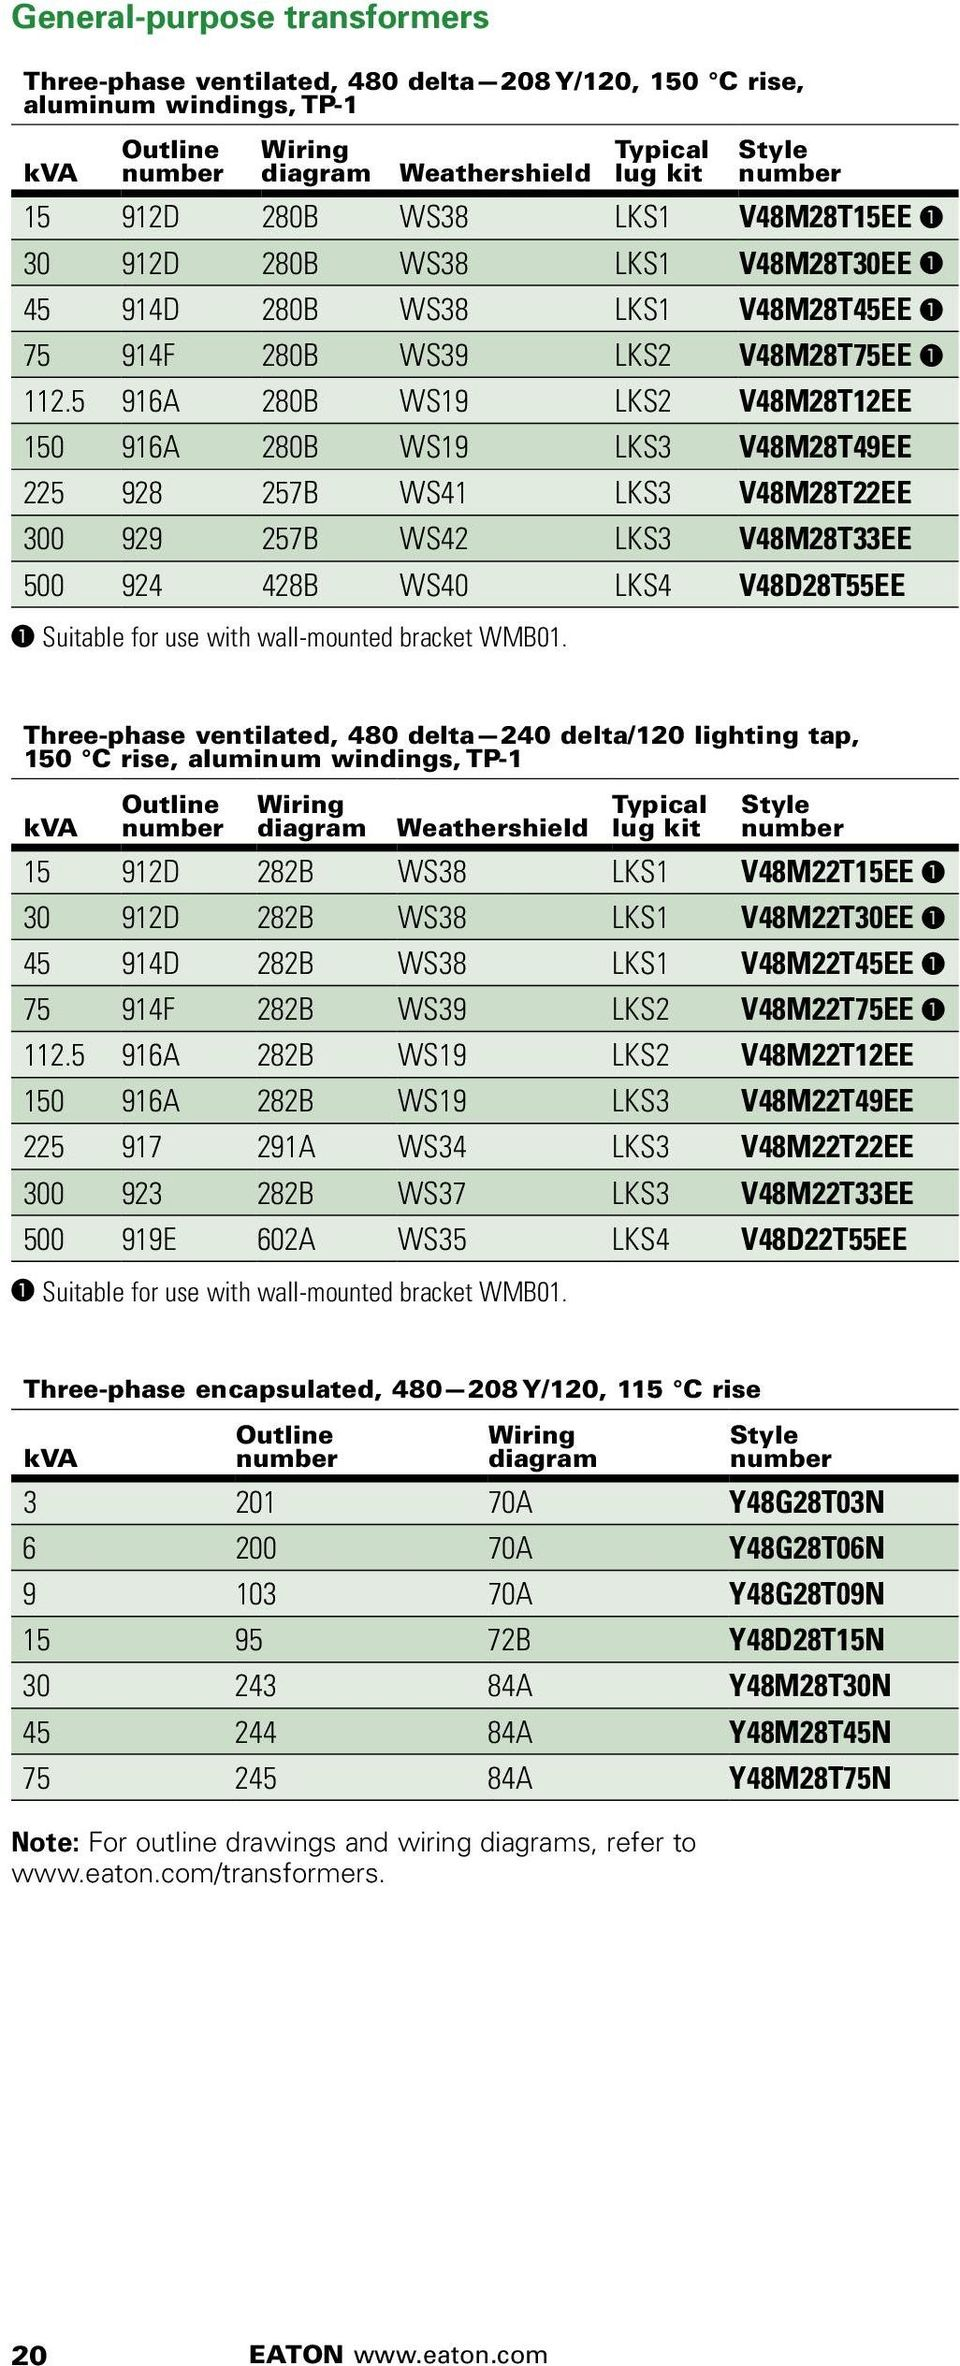 Quick Selector Reference Guide Frequently Used Distribution And Cutler Hammer Transformer Wiring Diagram 5 916 280b Ws19 Lks2 V48m28t12ee 150 Lks3 V48m28t49ee 225 928 257b Ws41